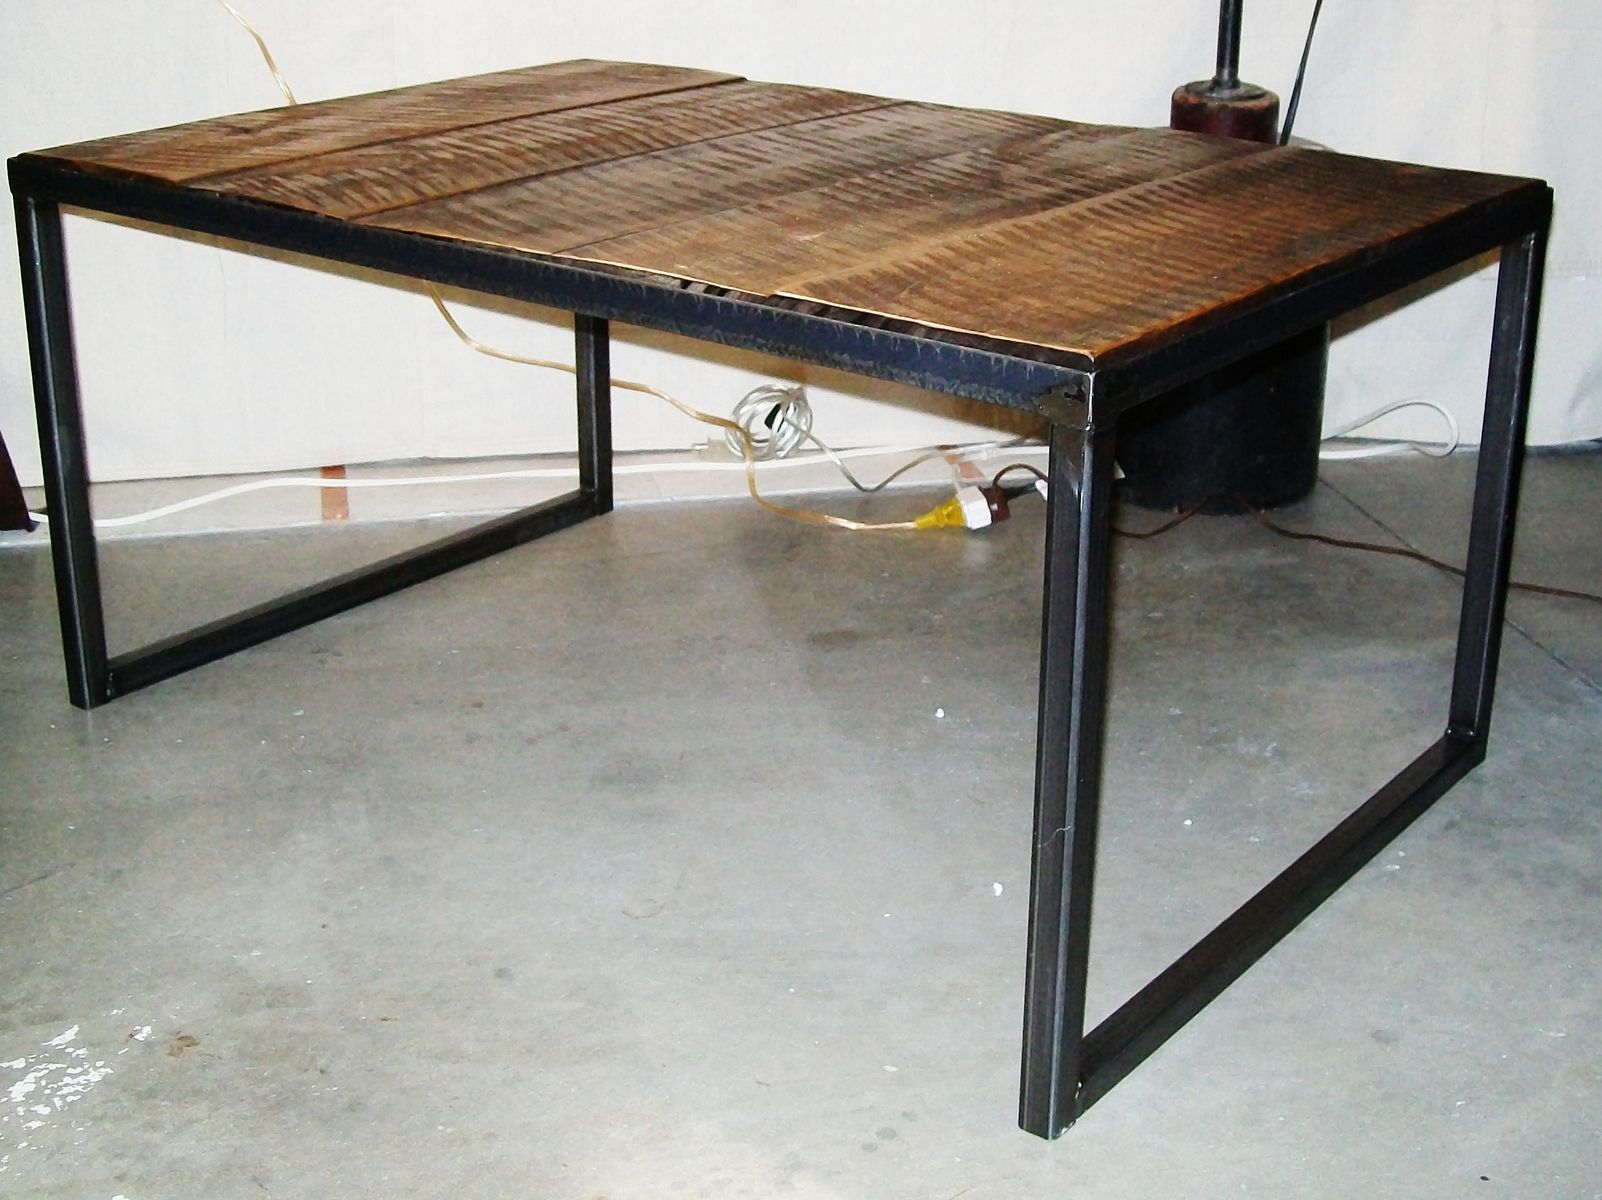 Handmade Industrial Wood Steel Coffee Table By Lucah Designs